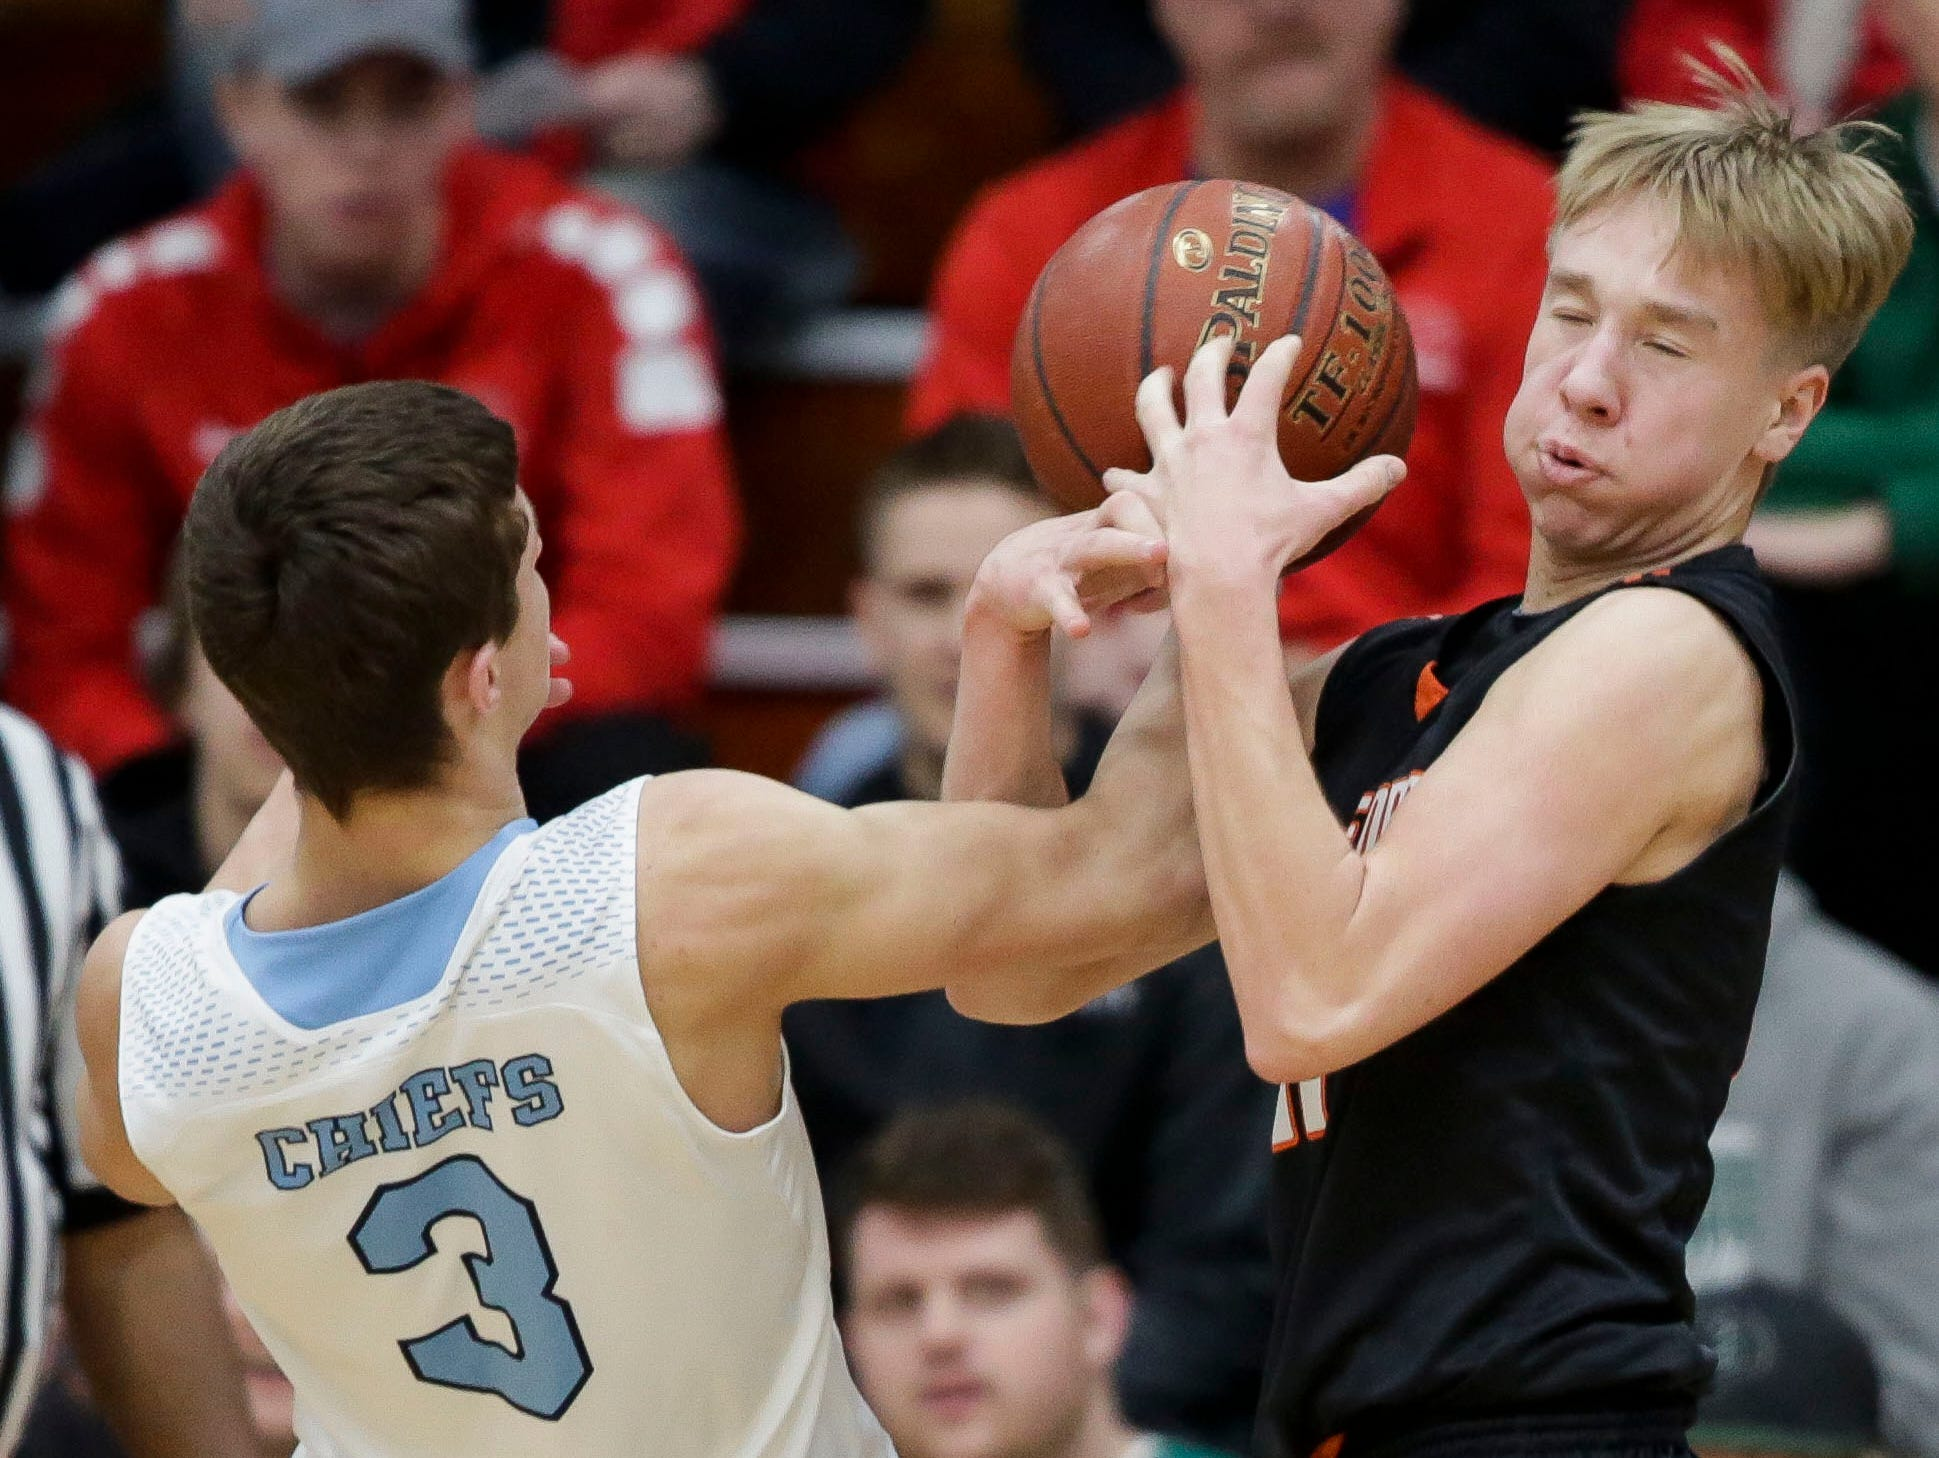 Stratford's Chandler Schmidt (11) grabs a rebound against Wisconsin Dells in a Division 3 sectional semifinal on Thursday, March 7, 2019, at Stevens Point Area High School in Stevens Point, Wis. Tork Mason/USA TODAY NETWORK-Wisconsin